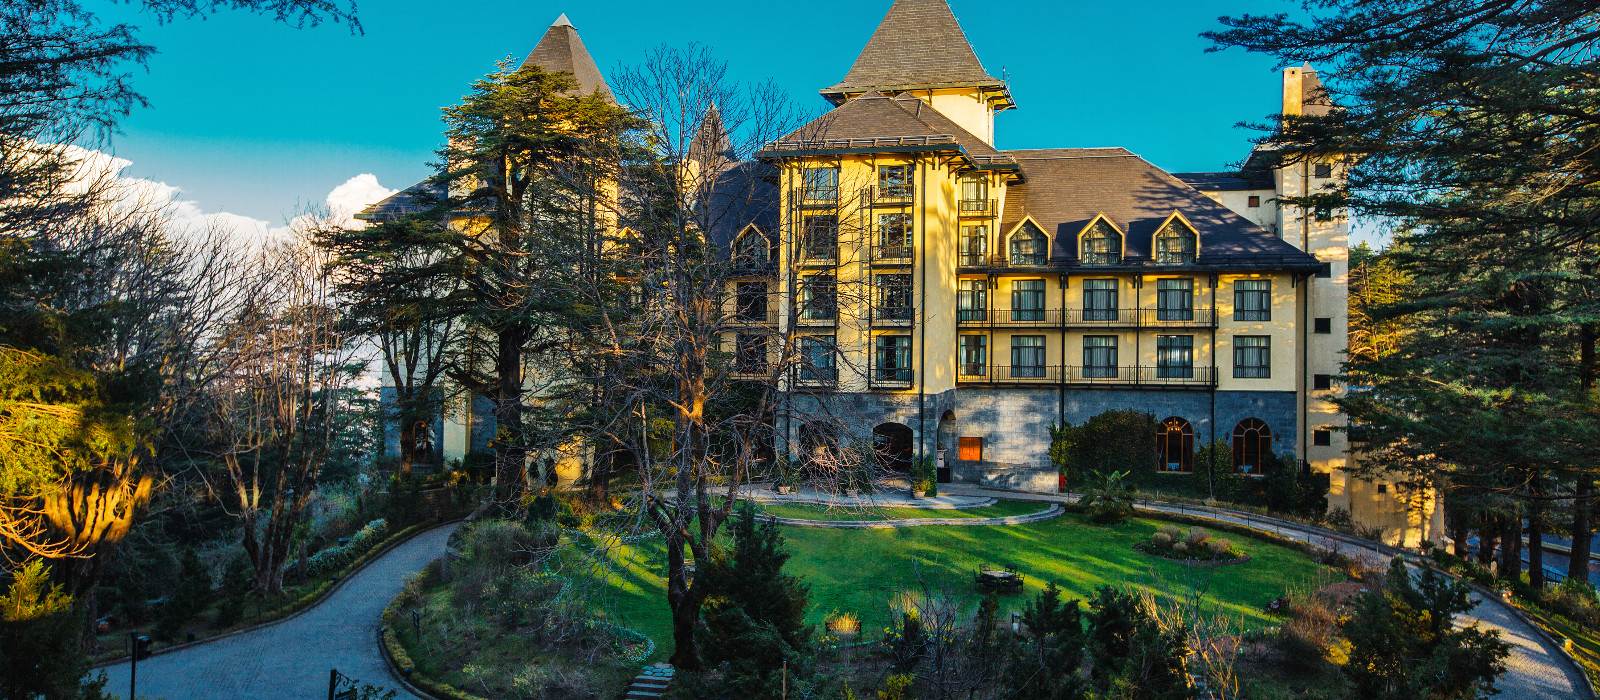 Hotel Wildflower Hall, An Oberoi Resort Himalaja